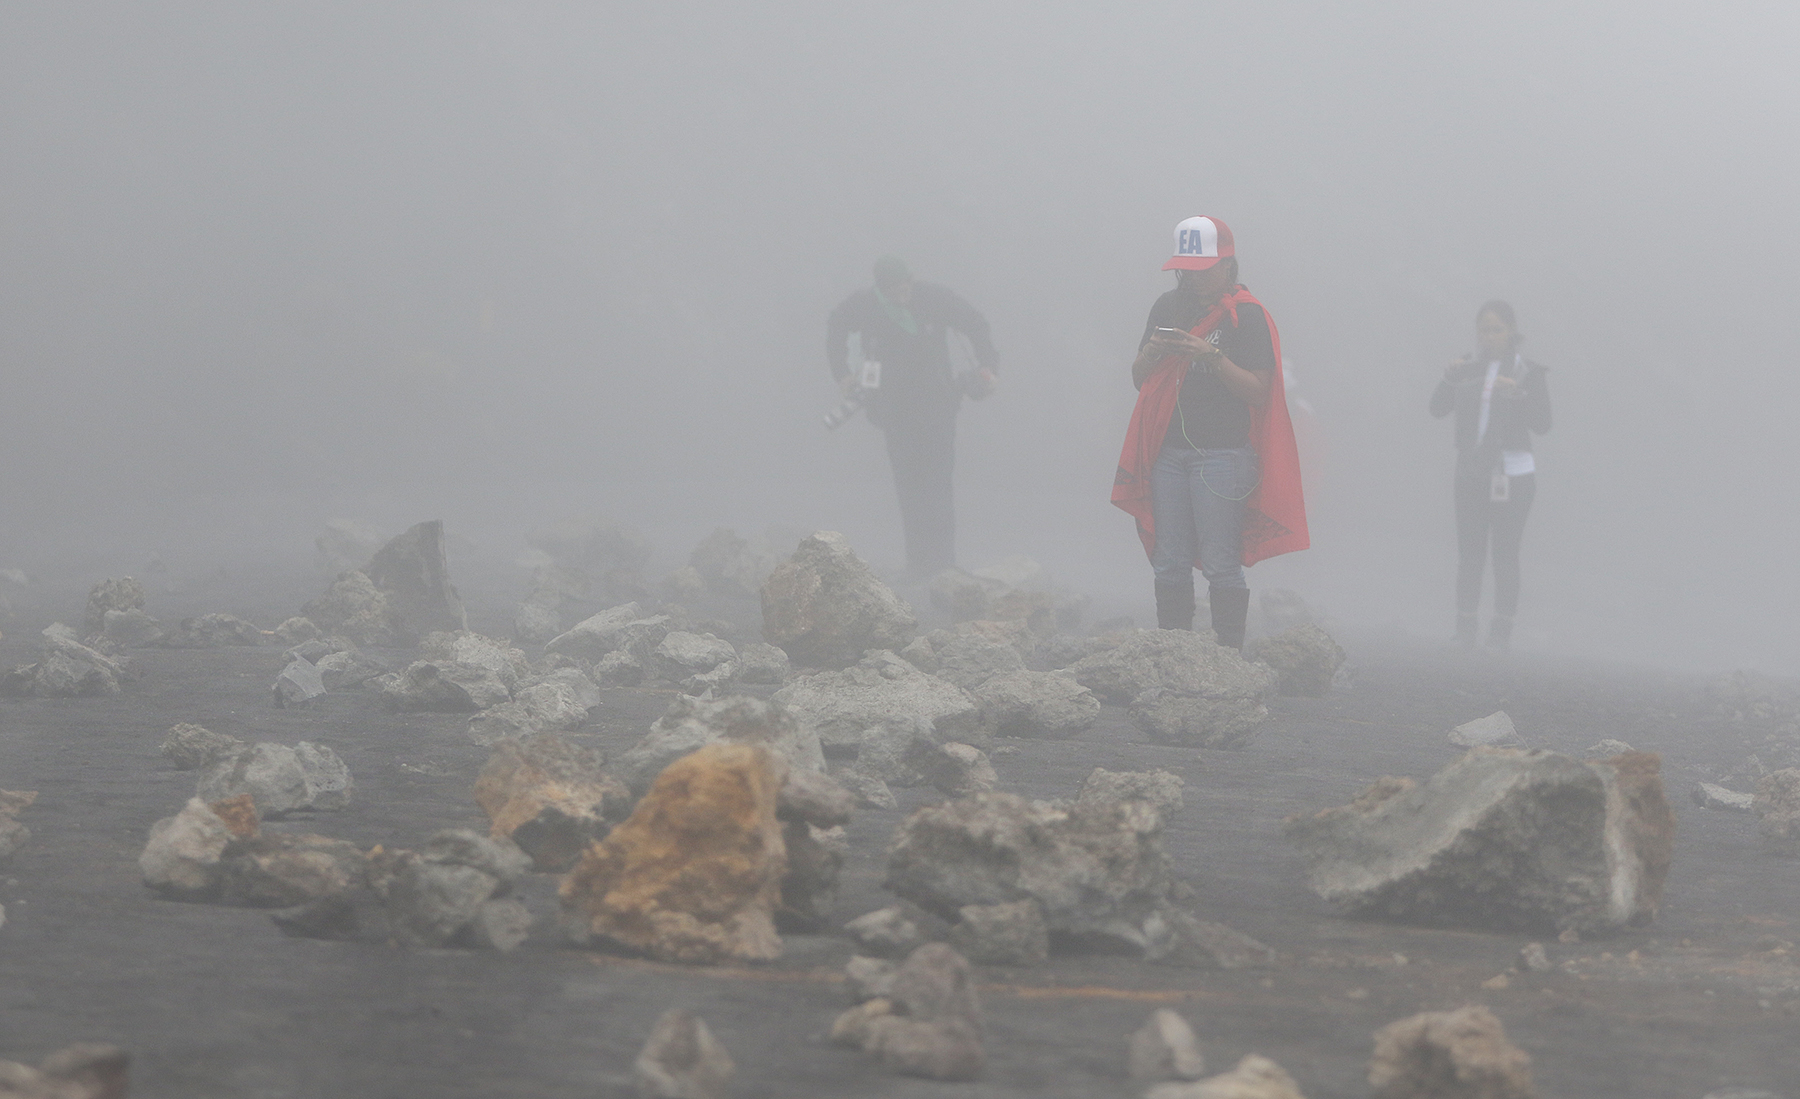 <p>When a TMT caravan again attempts to reach the Manua Kea construction site in June, scores of stones are strewn near a hairpin turn along an access road. The TMT workers once more abandon their efforts to reach the site.</p>